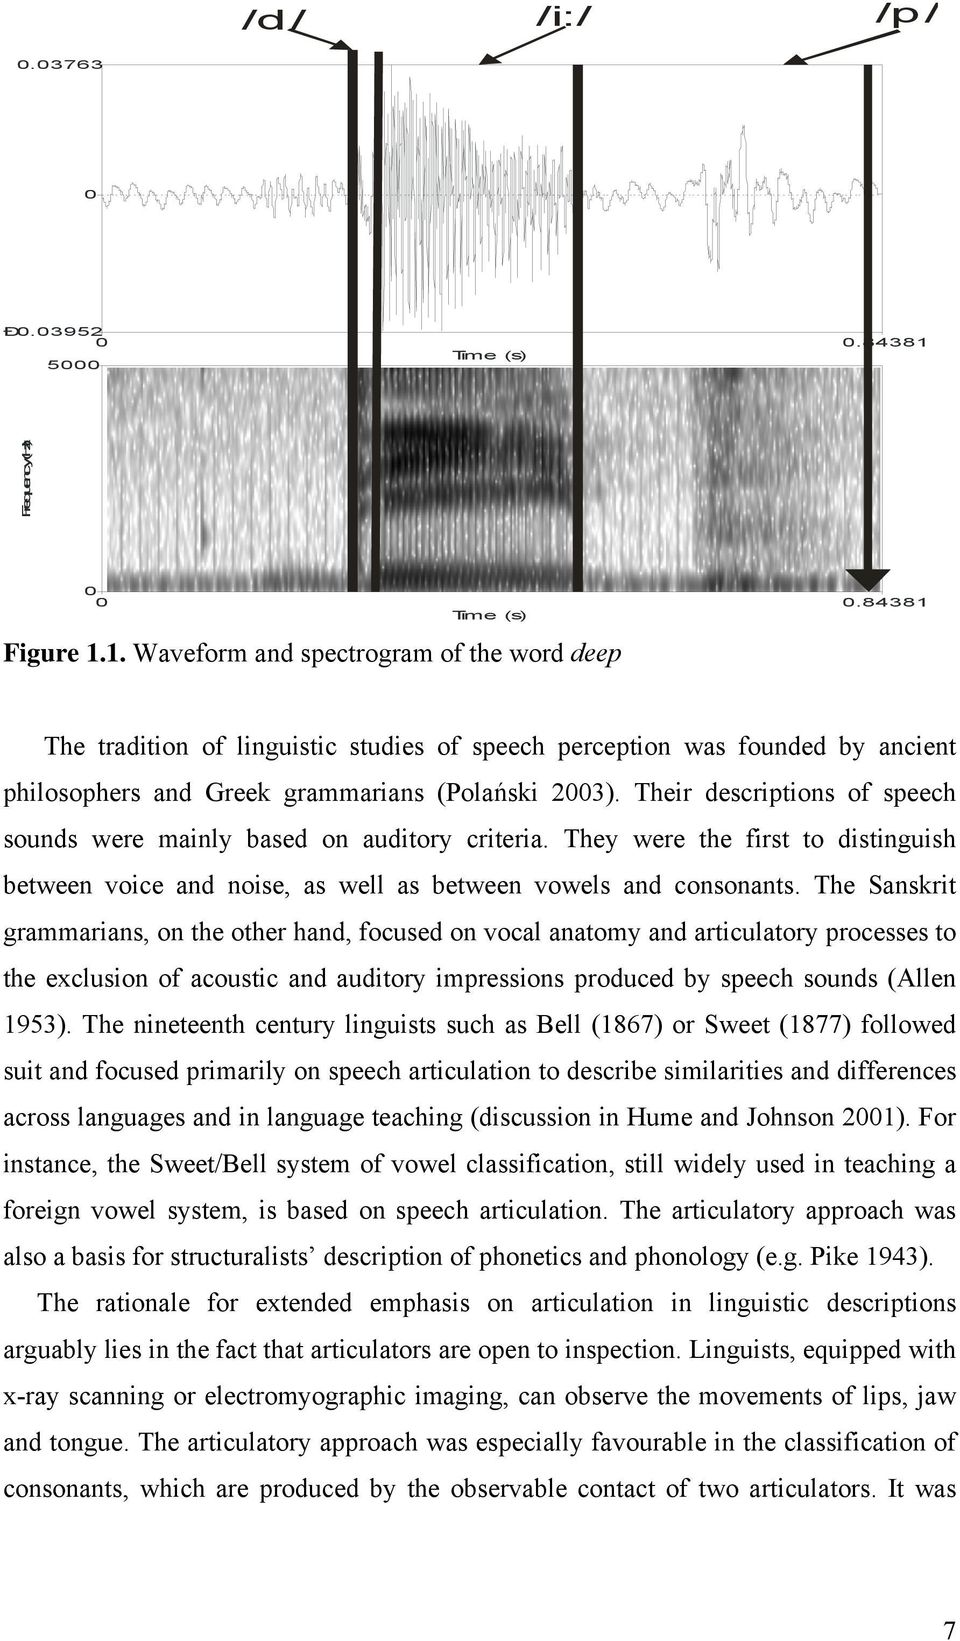 Tim e (s) Figure 1.1. Waveform and spectrogram of the word deep The tradition of linguistic studies of speech perception was founded by ancient philosophers and Greek grammarians (Polański 23).